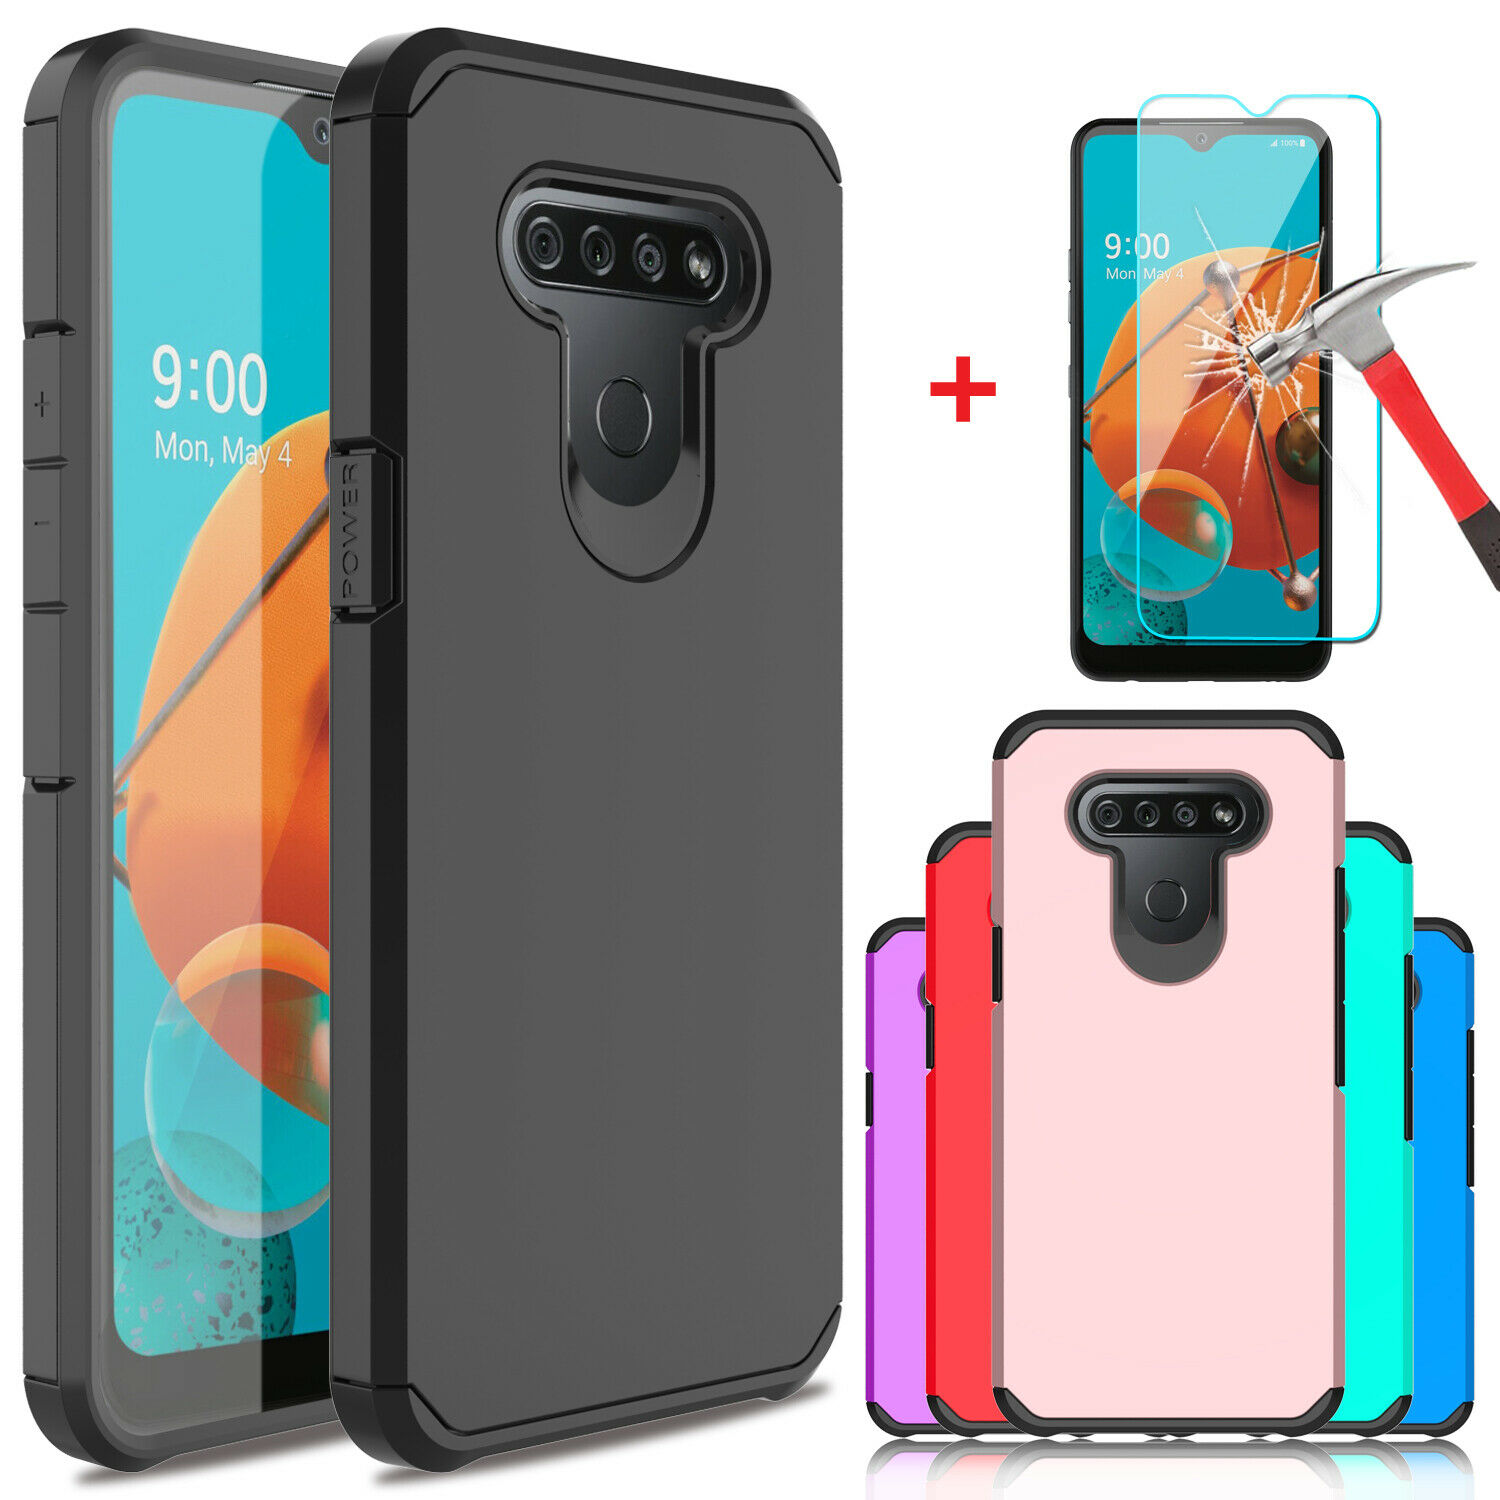 For LG K51/Stylo 6/Reflect Phone TPU Case Cover,Tempered Glass Screen Protector Cases, Covers & Skins